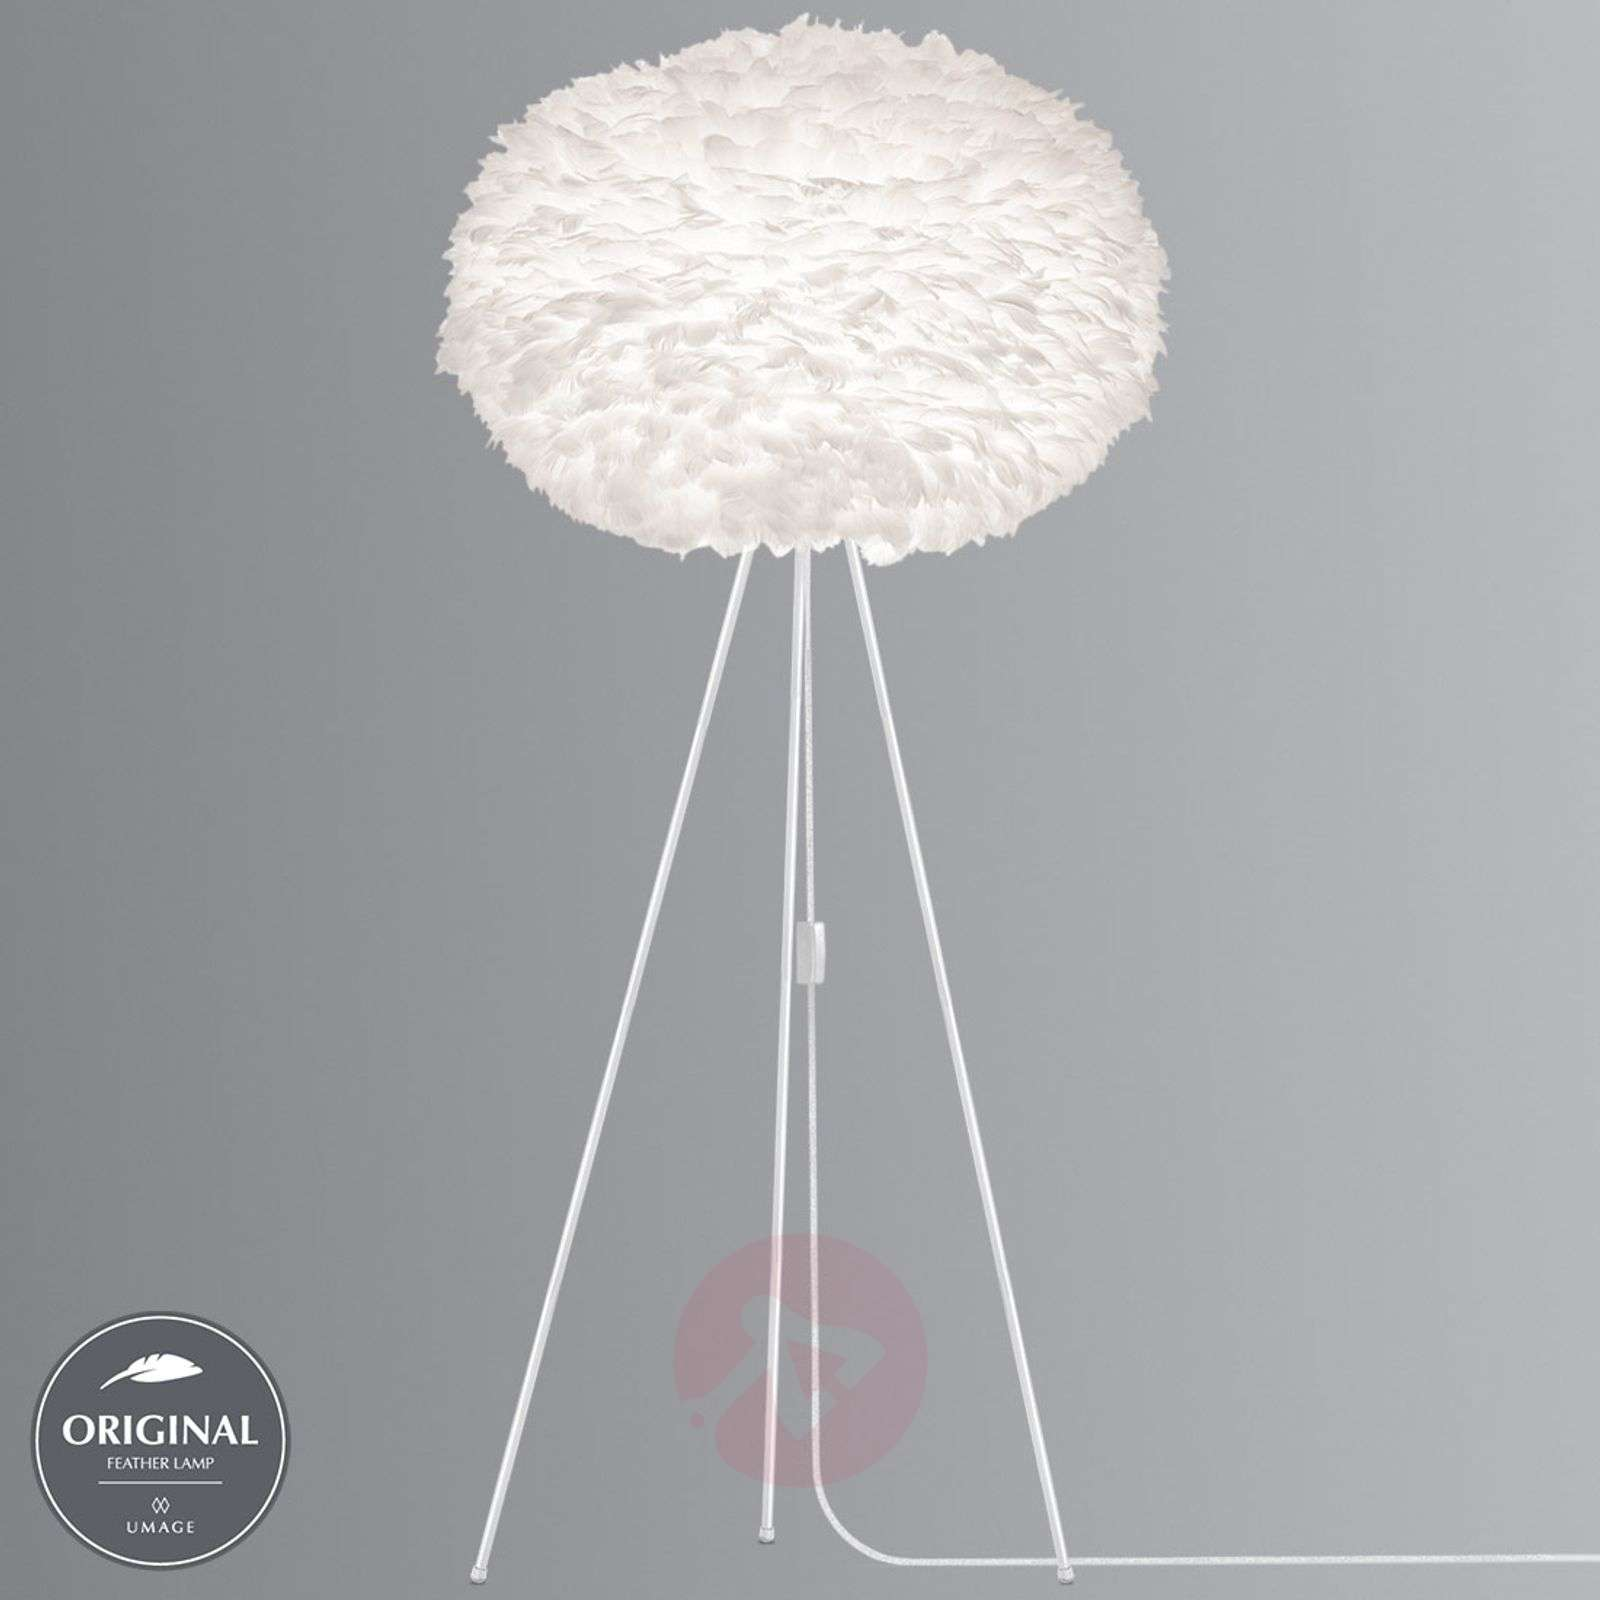 UMAGE Eos X-large floor lamp tripod white-9521130-01